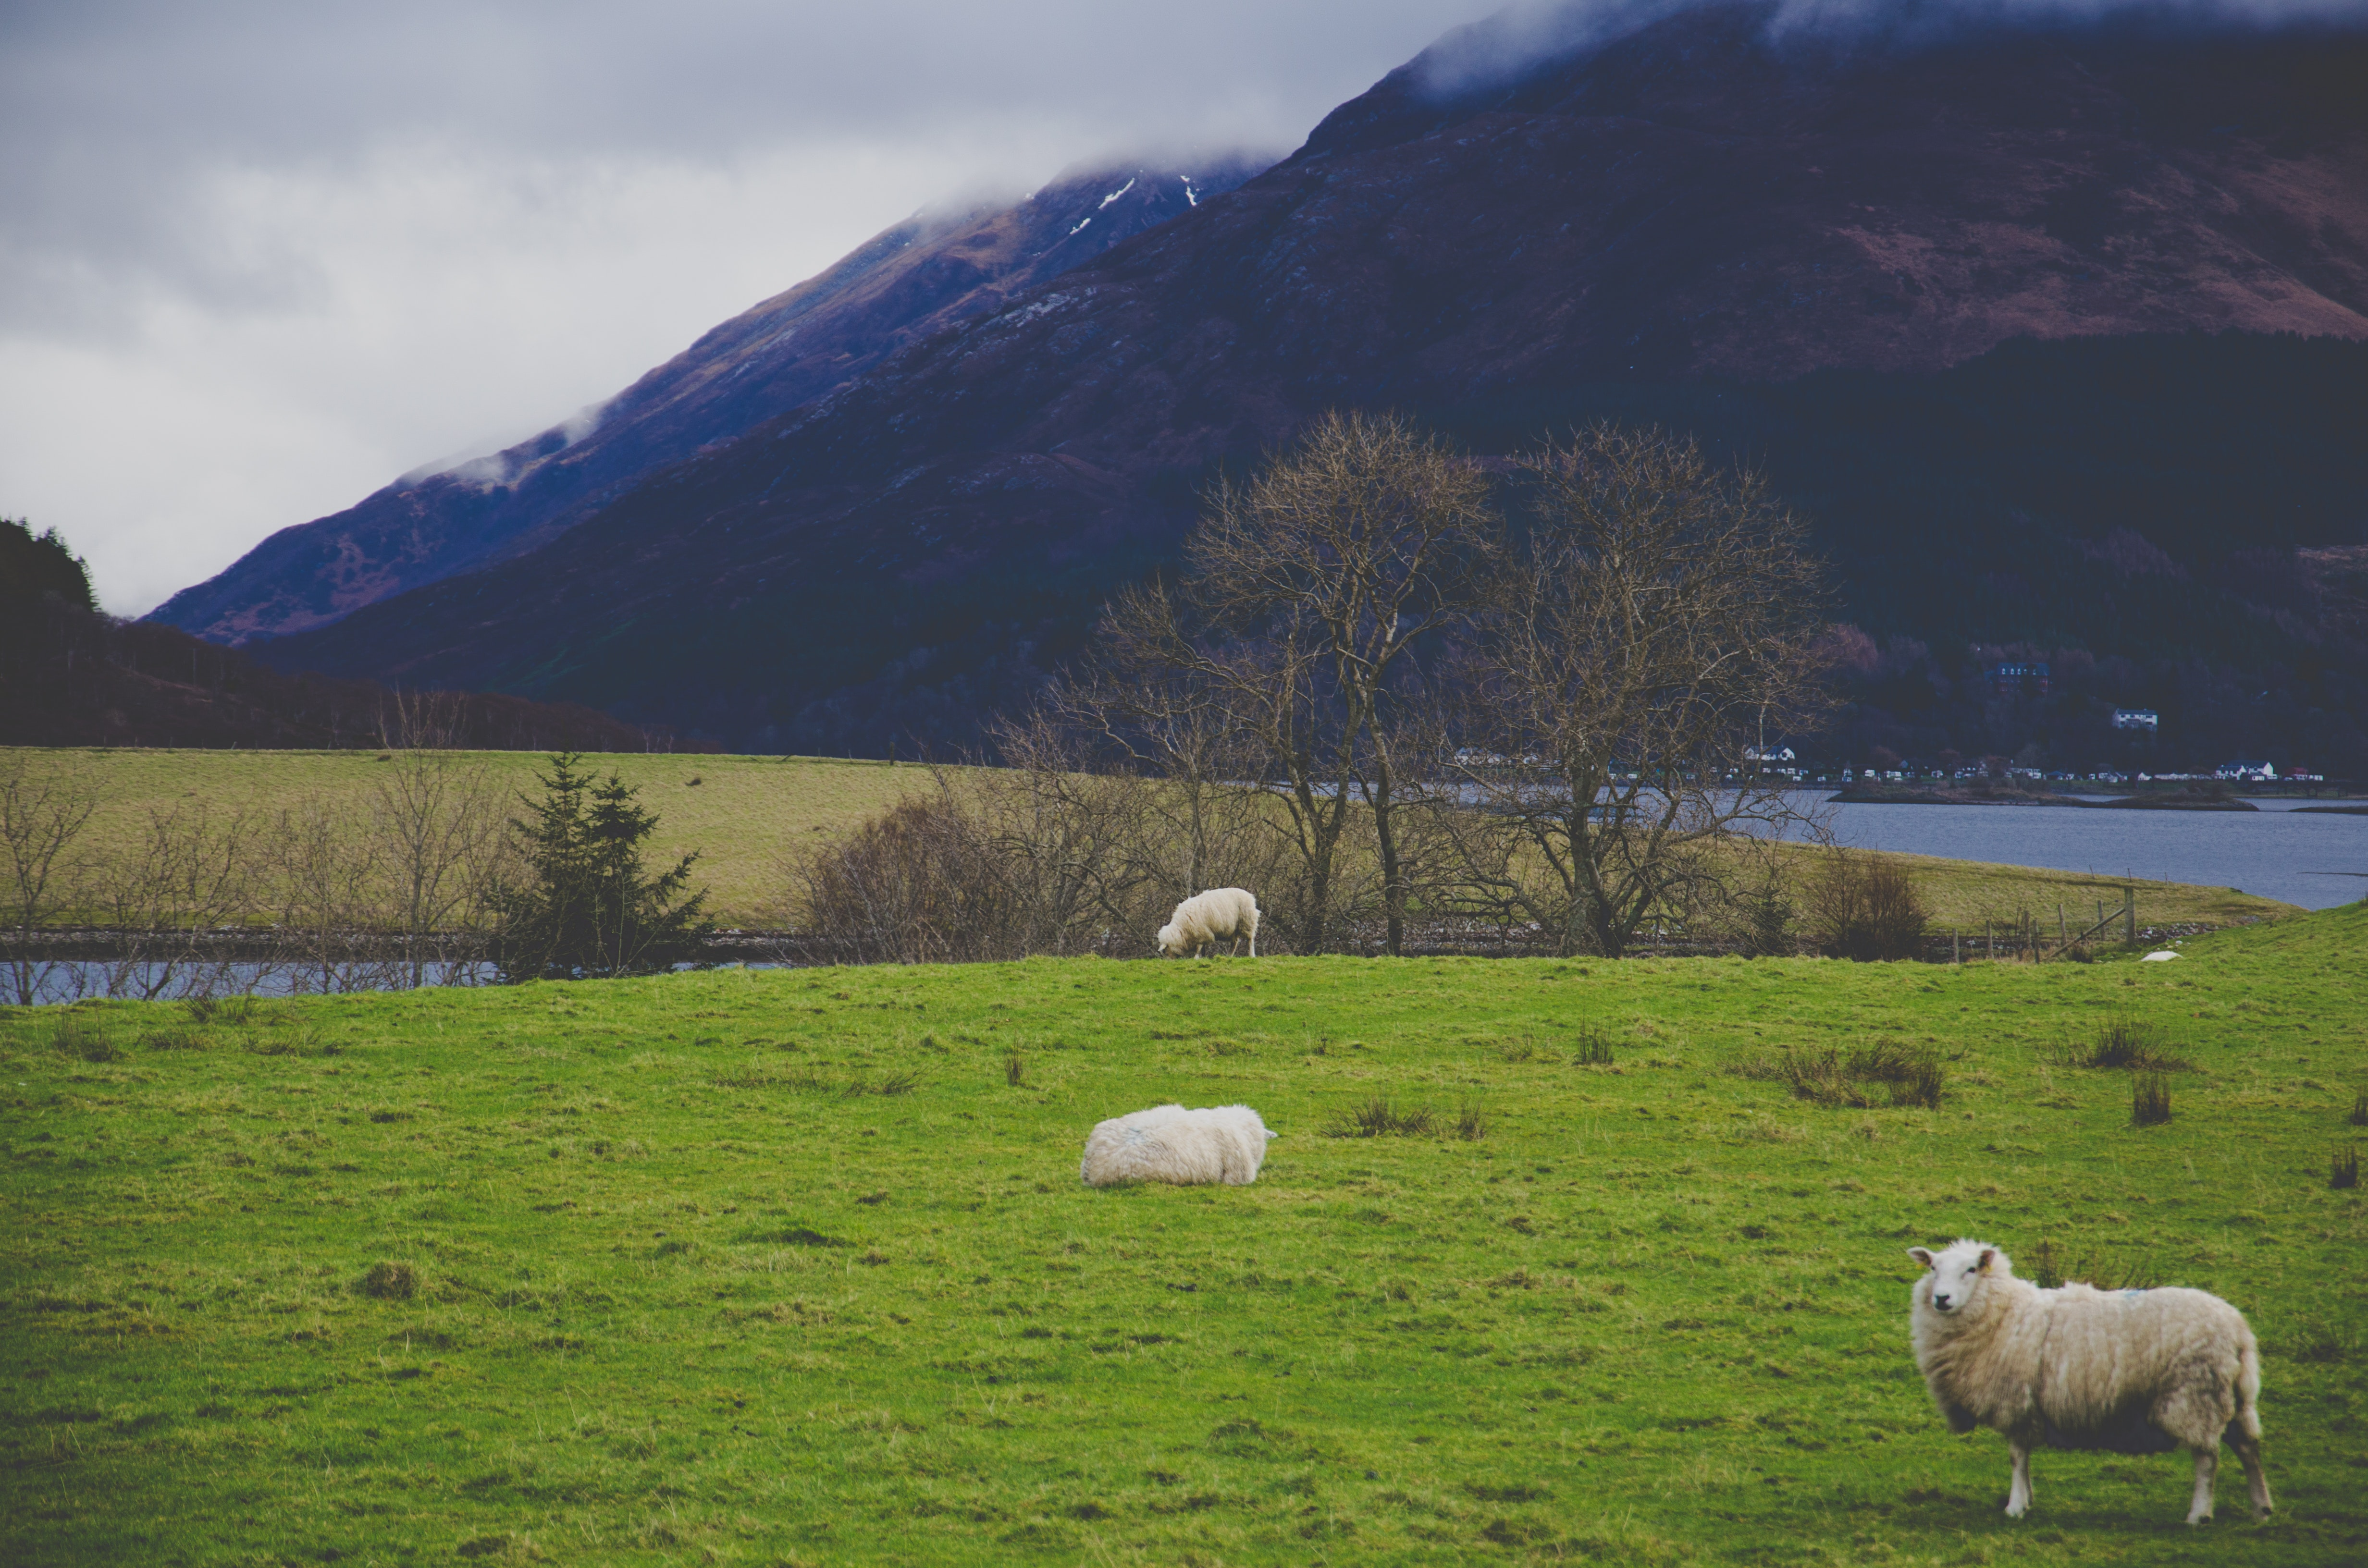 White sheep on green grass field photo